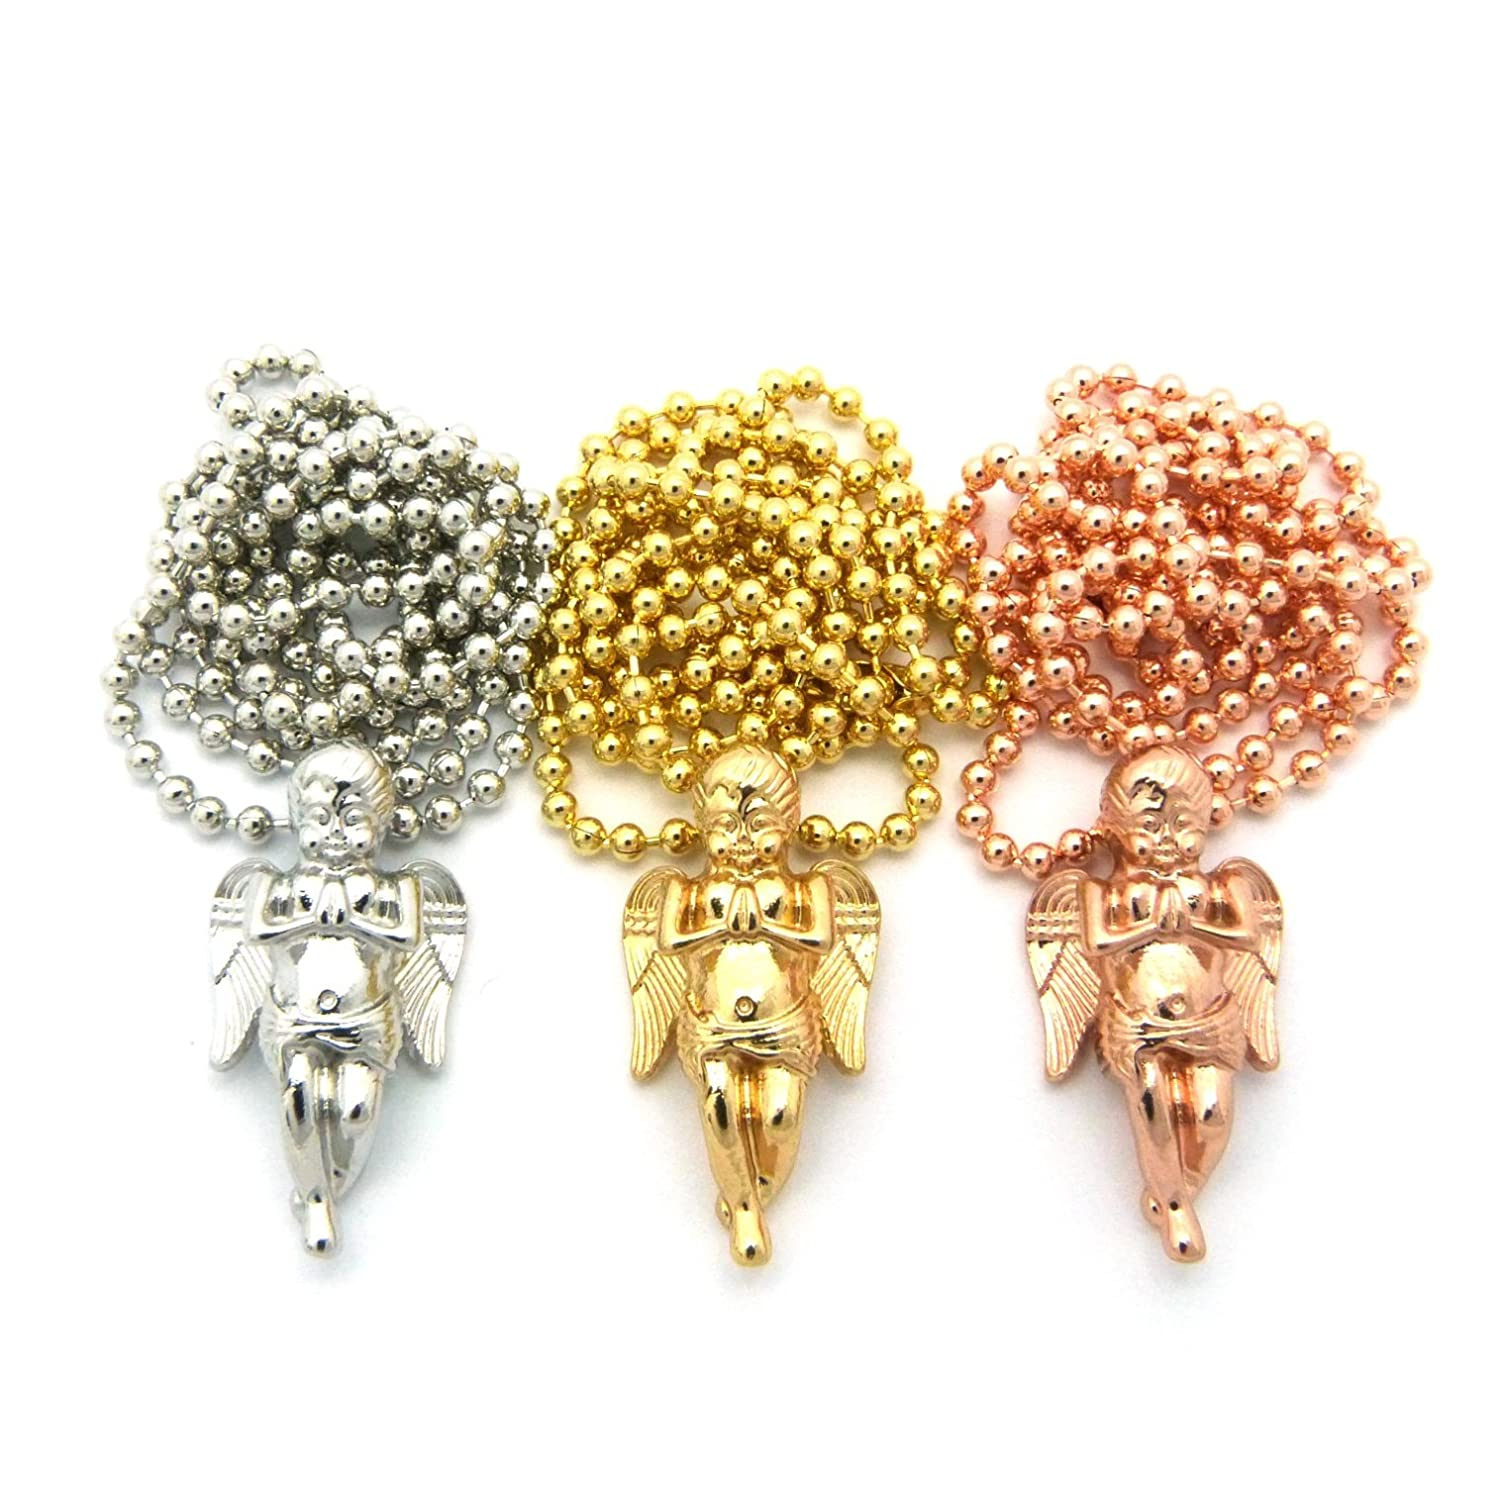 Silver//Gold//Rose Gold-Tone 3 Solid Praying Angel Micro Pendant Set with 24 Ball Chain Necklaces